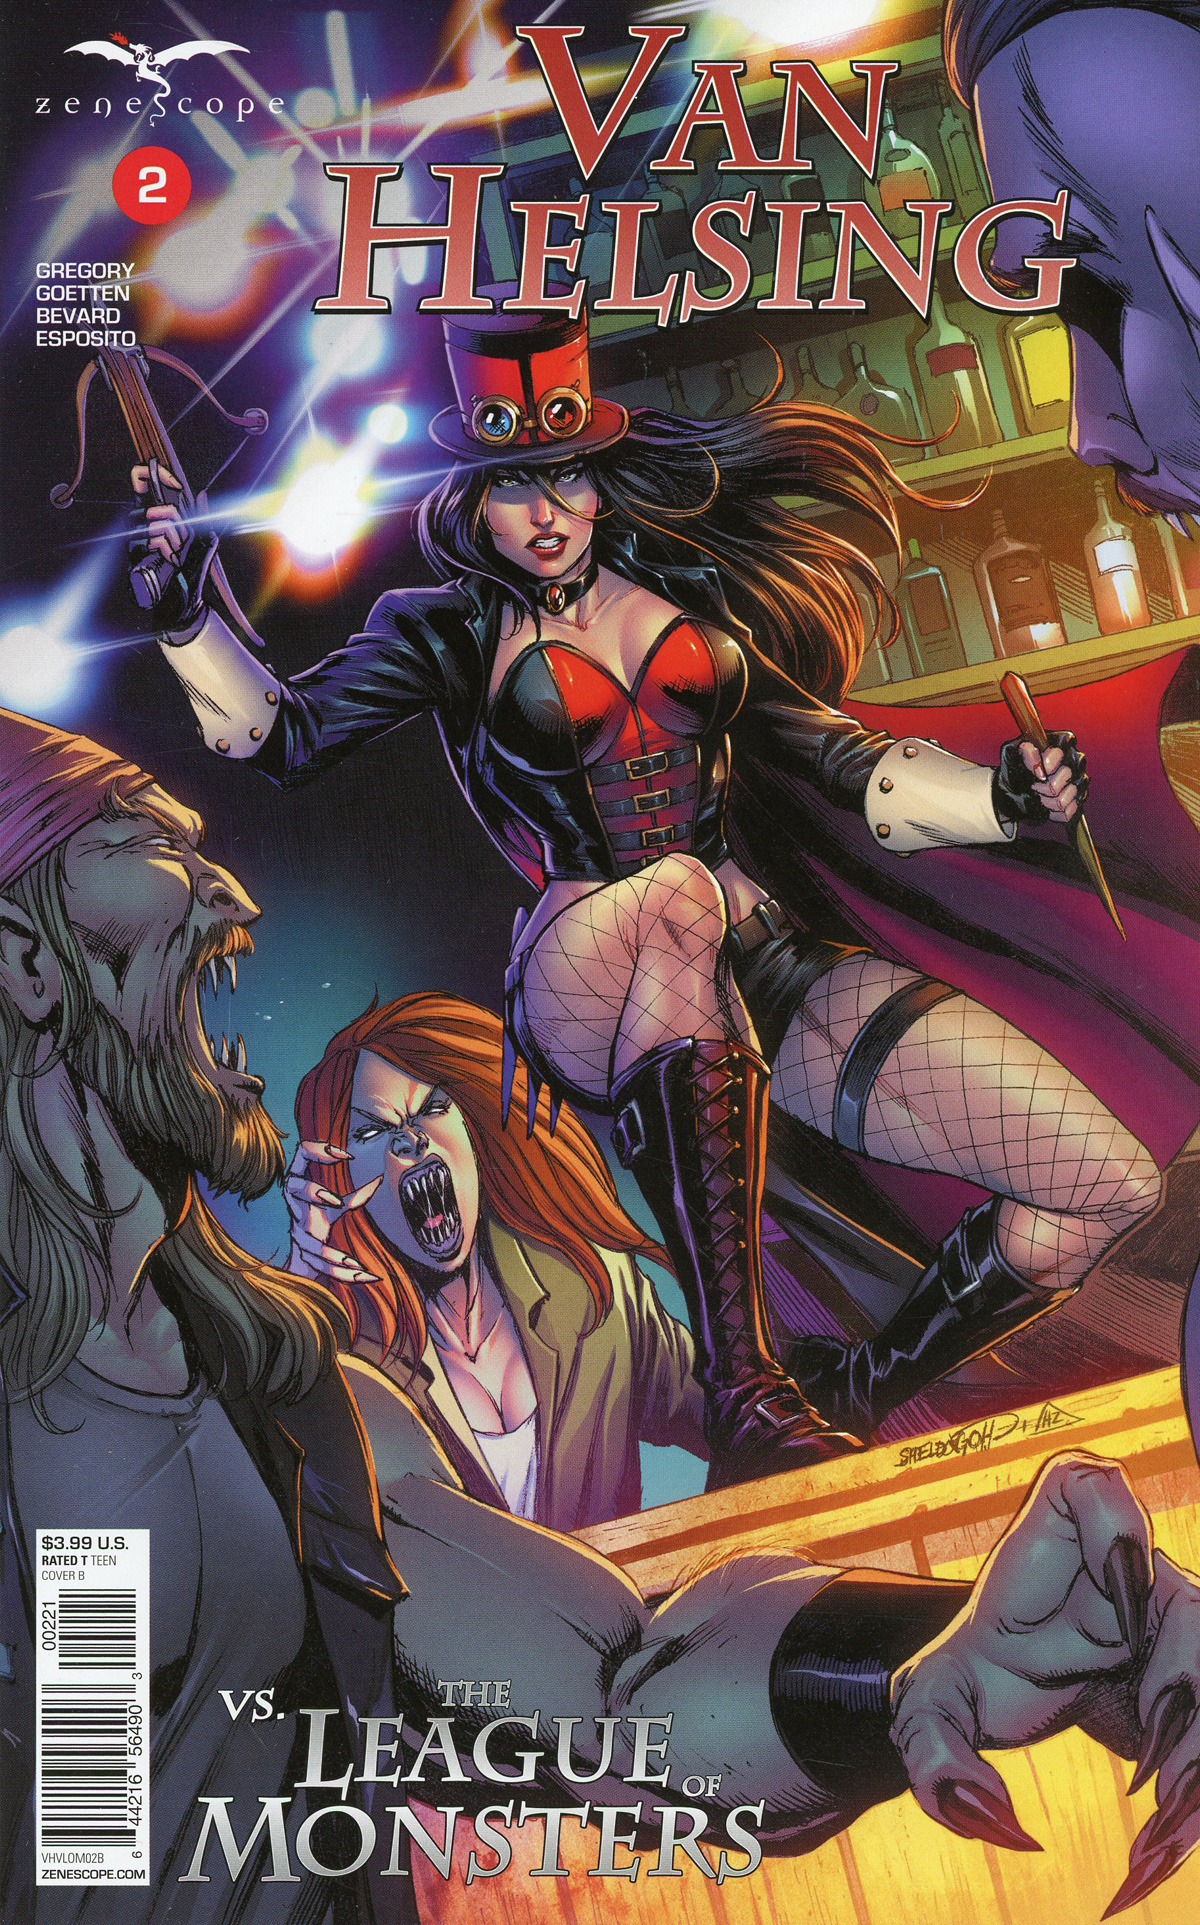 Grimm Fairy Tales Presents Van Helsing vs The League Of Monsters #2 Cover B Sheldon Goh